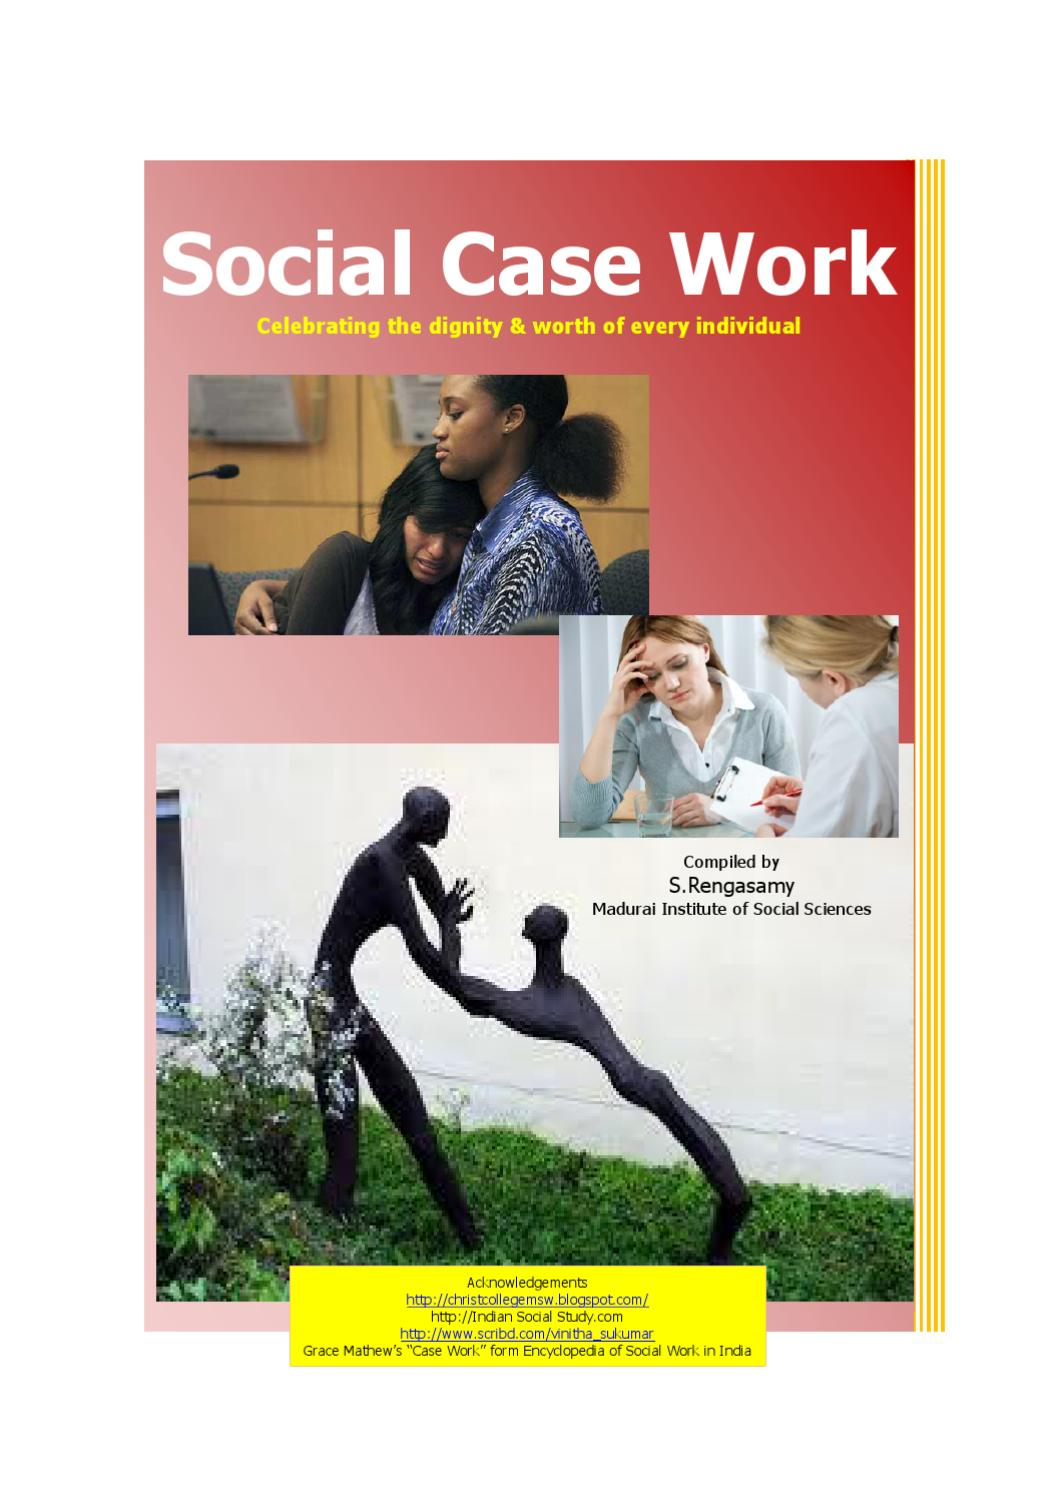 social work case studies Stages in case work different stages in case work process are: case study /social investigation documents similar to social case work-working with individuals.